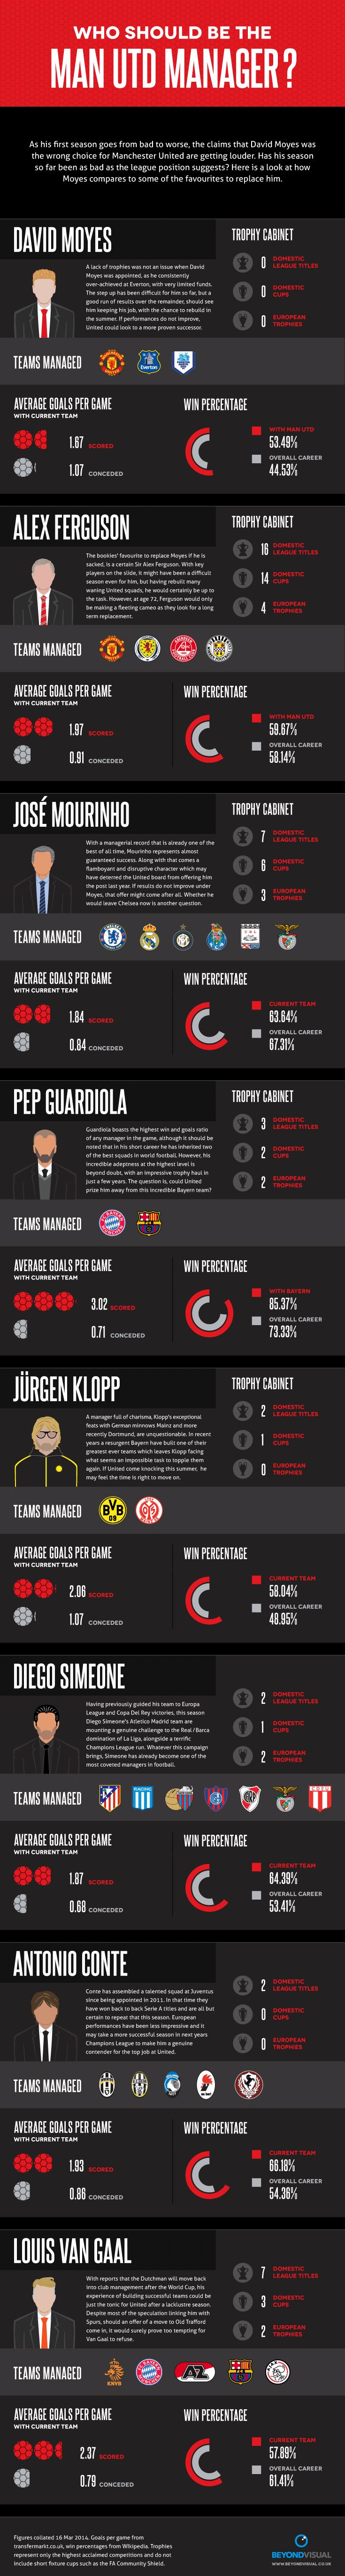 Who should be the Manchester United manager? #sport #football #soccer #man utd #manchester